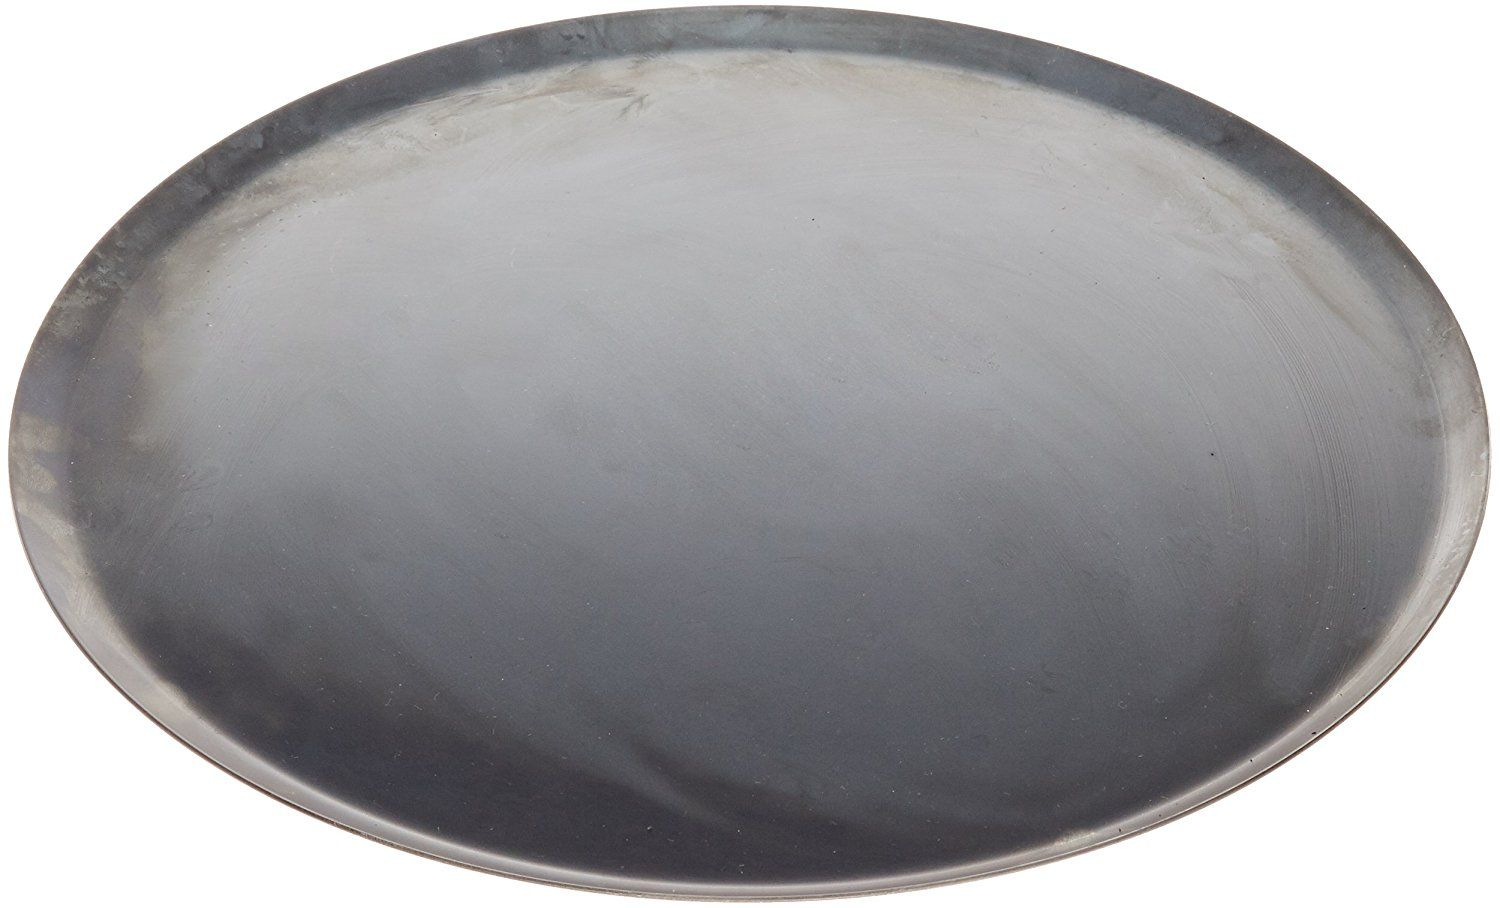 Matfer Bourgeat 310407 Black Steel Round Oven Sheets Don T Get Left Behind See This Great Product Baking A Bourgeat Baking Cookie Sheets Bakeware Set